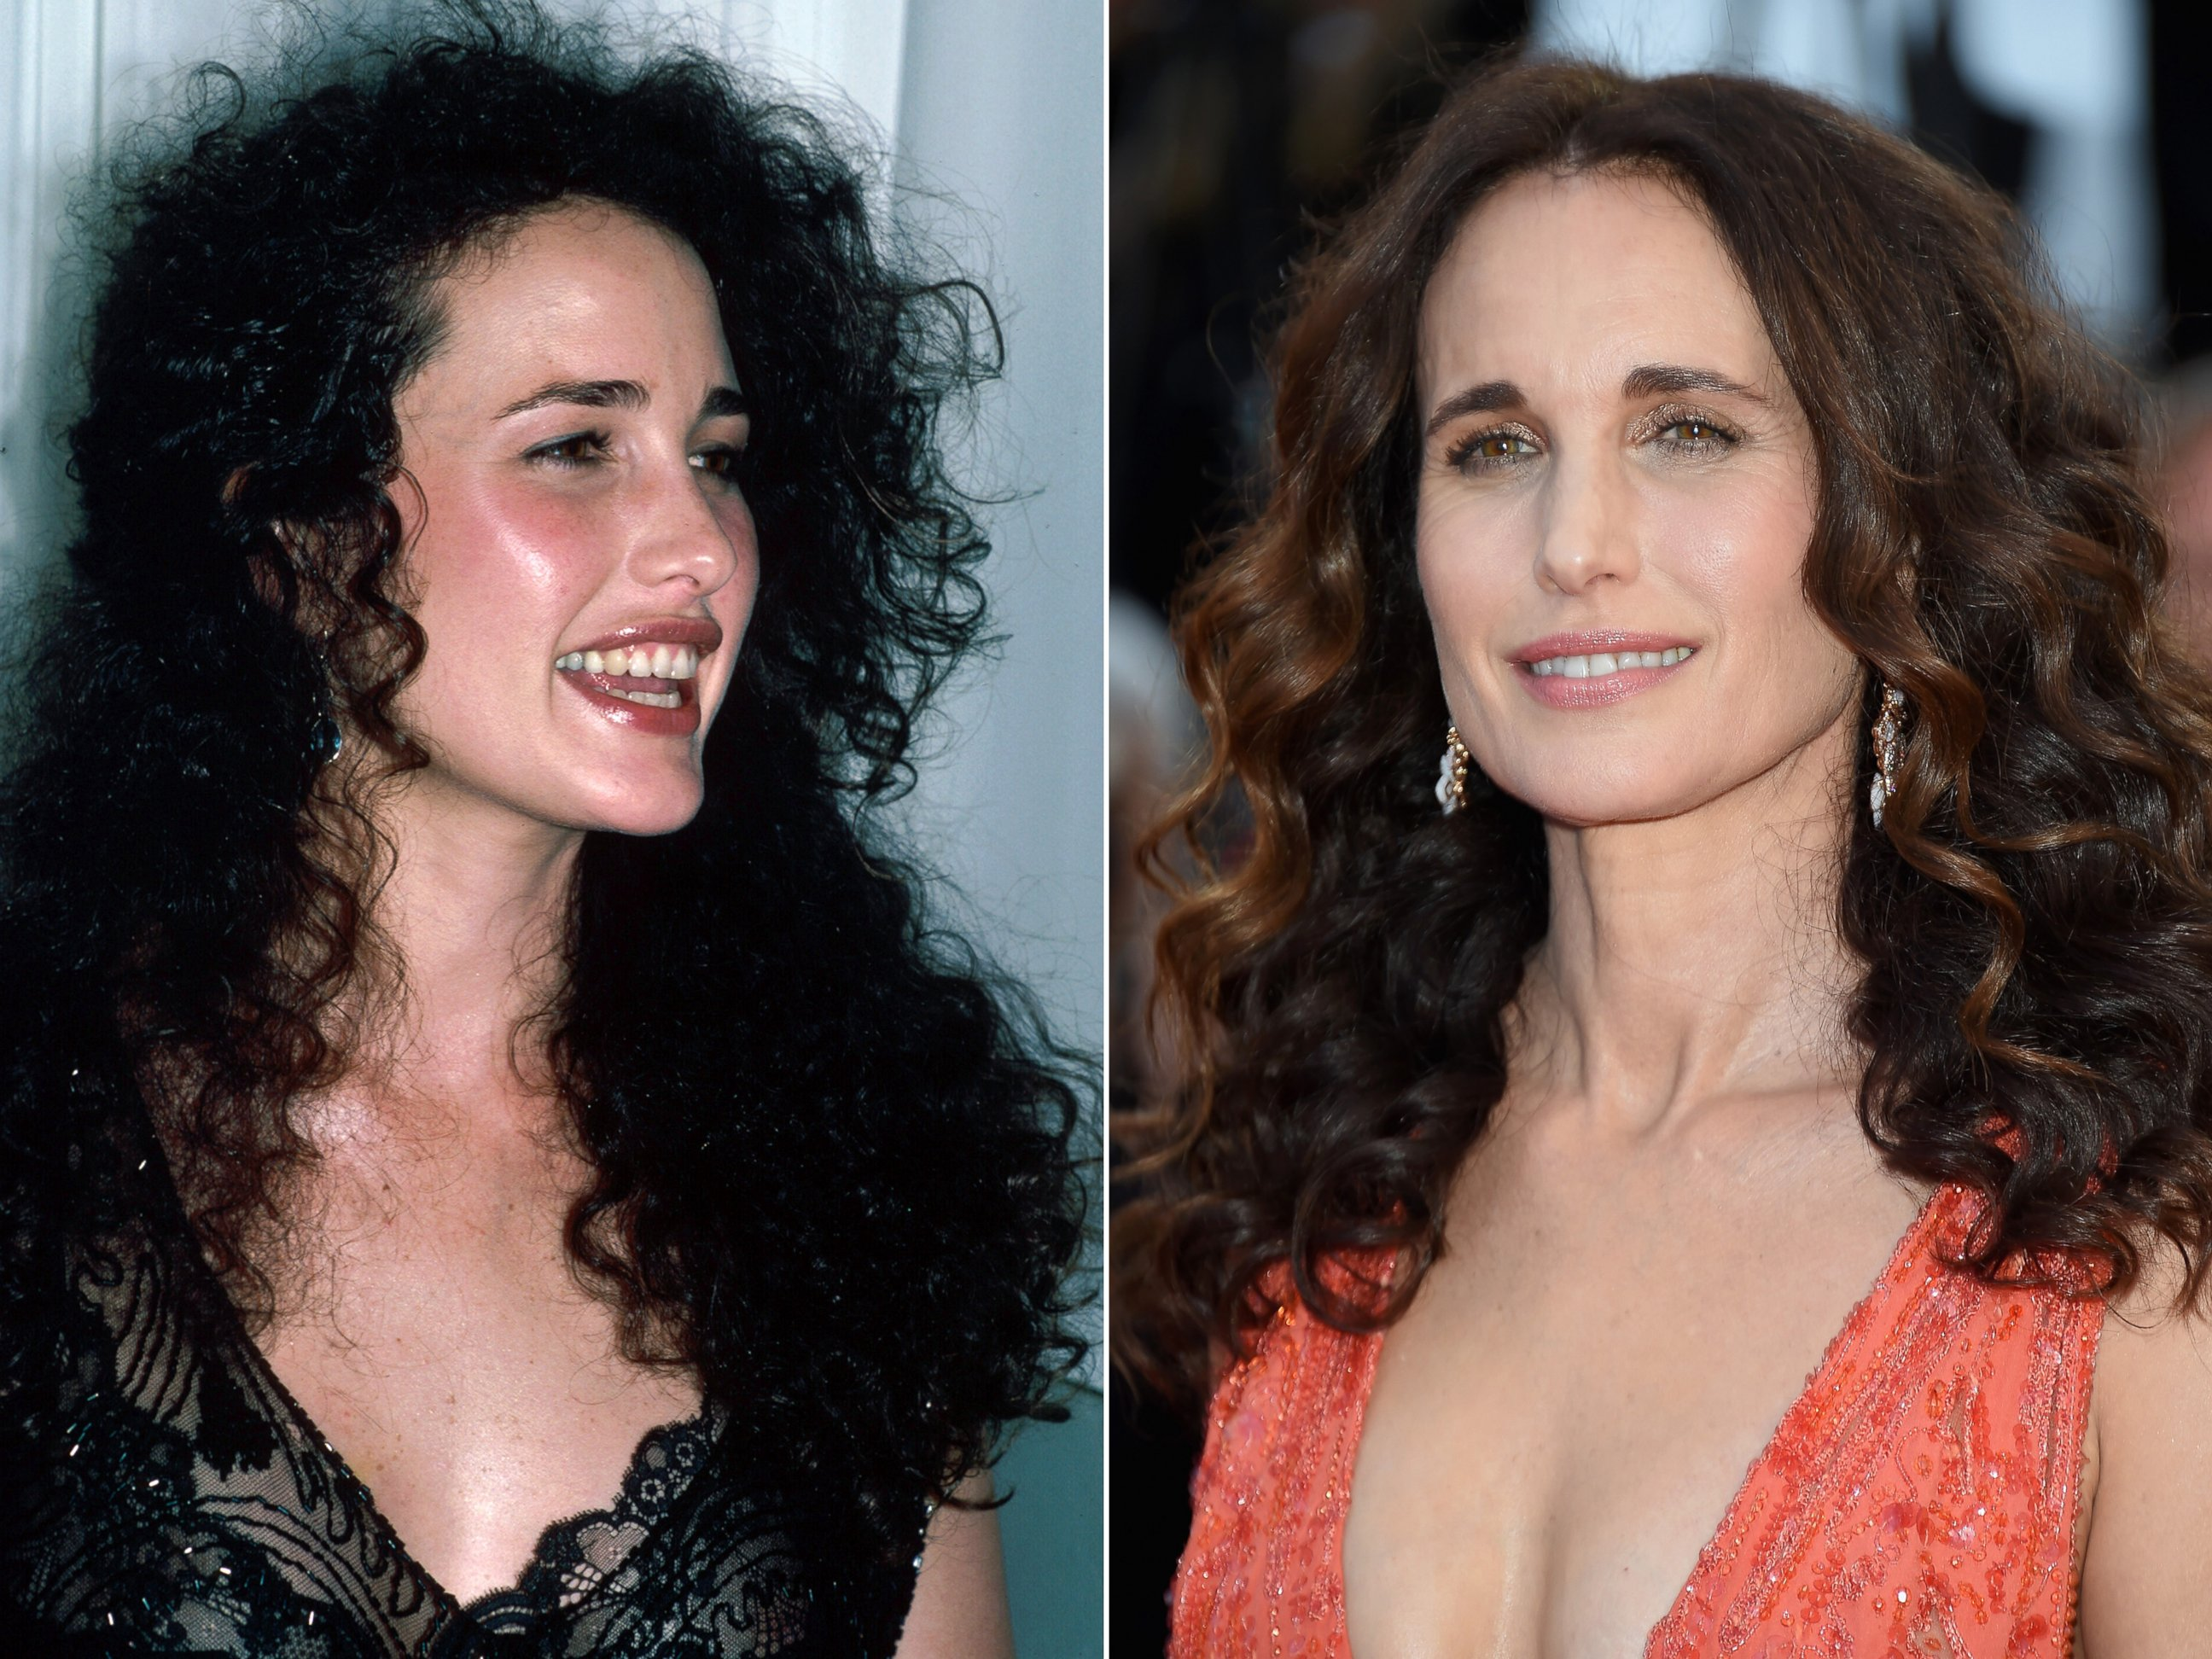 Young Andie MacDowell nudes (32 photos), Pussy, Leaked, Feet, bra 2018